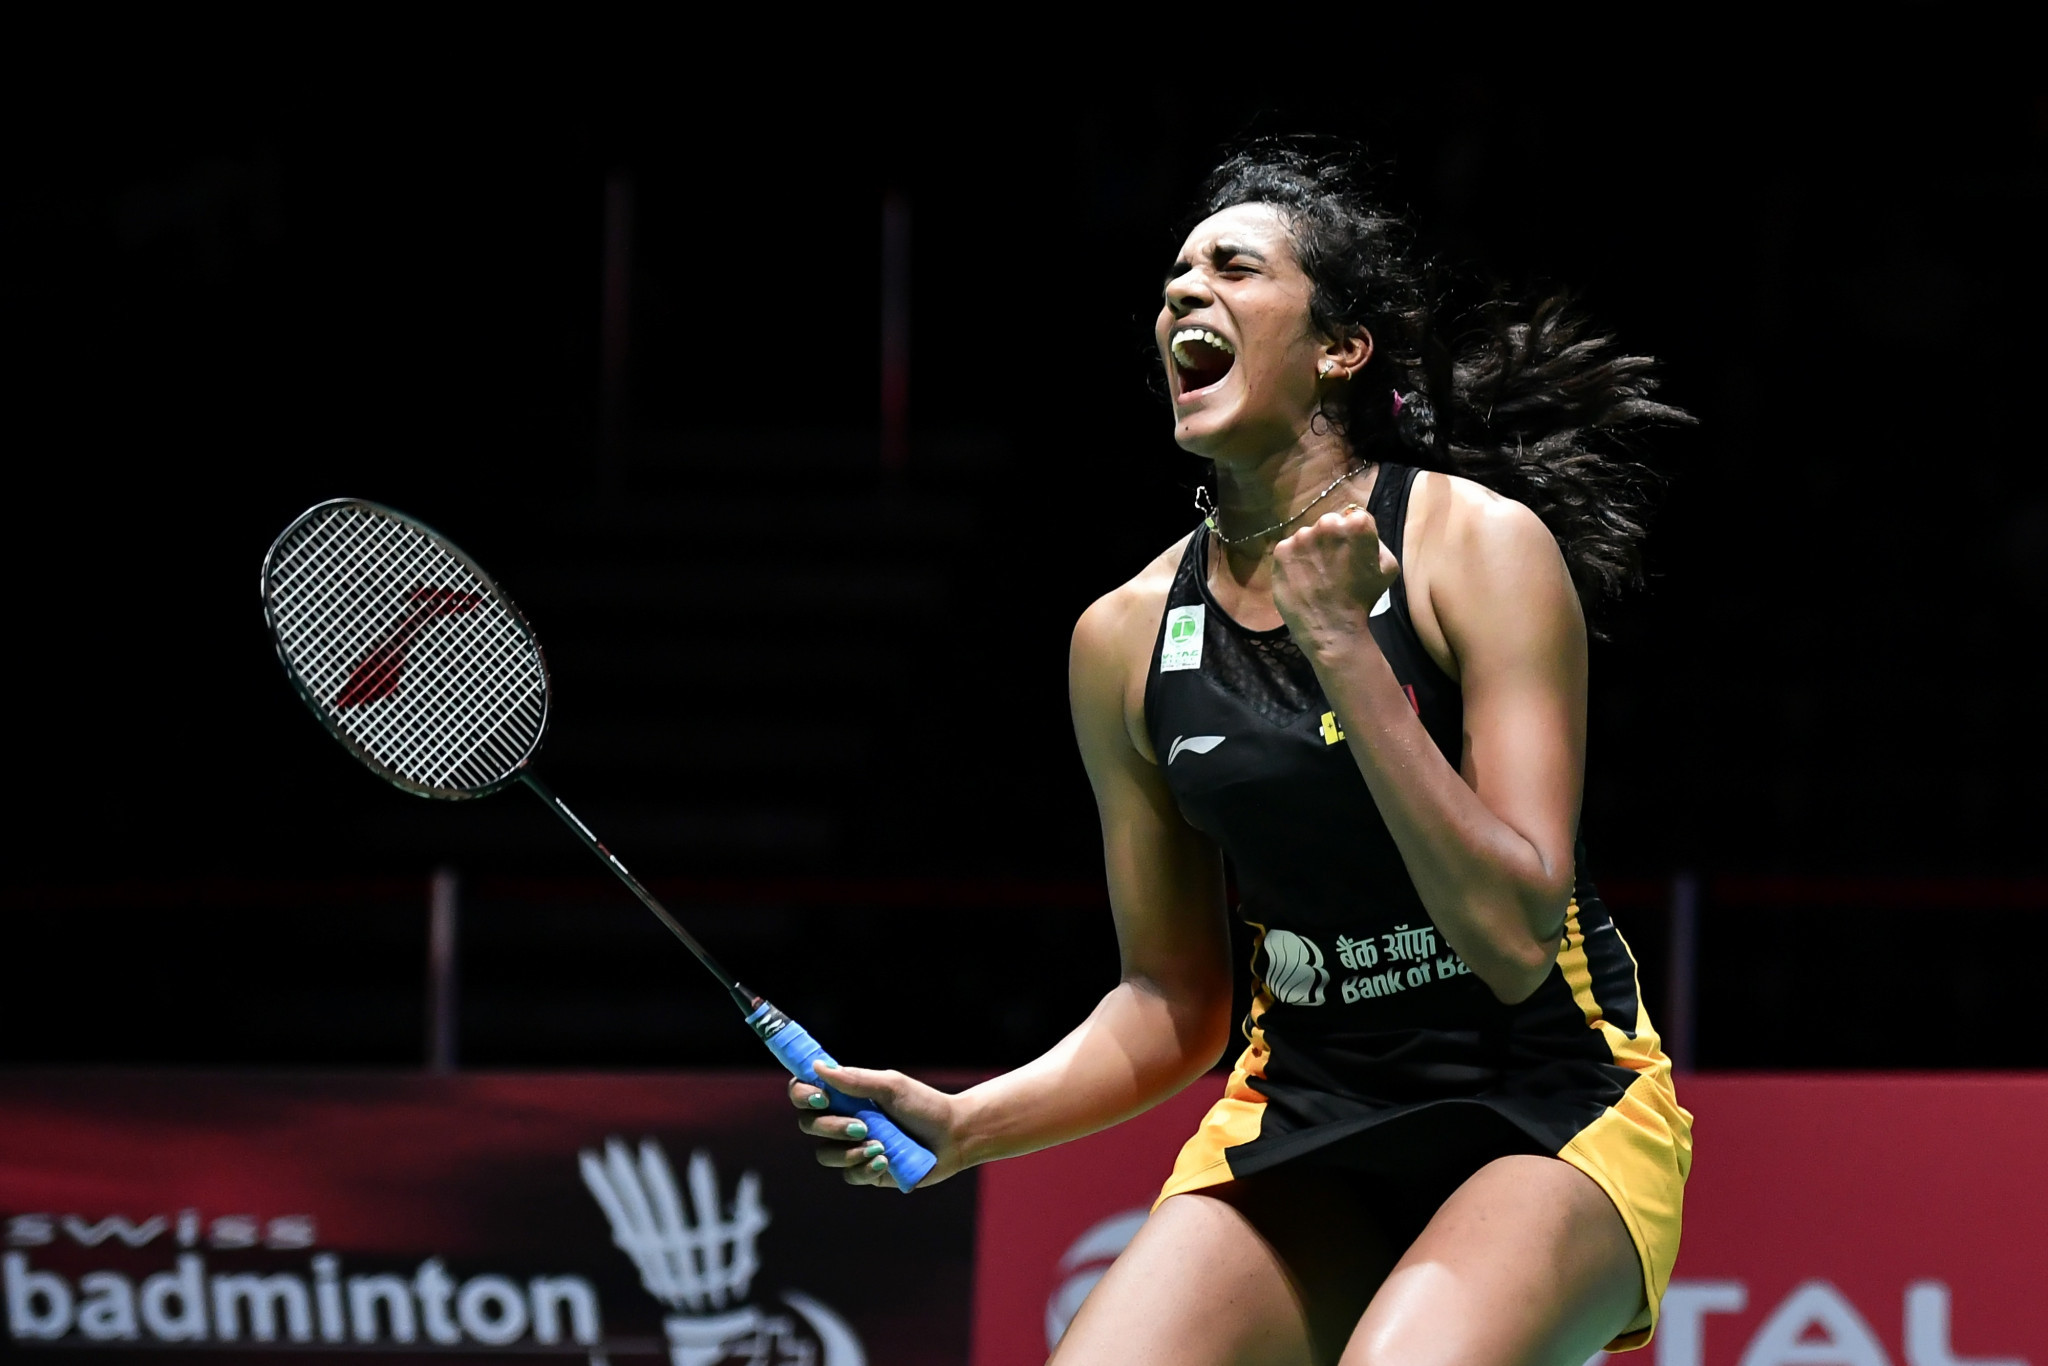 PV Sindhu progressed to the semi-finals after beating Tai Tzu-ying ©Getty Images